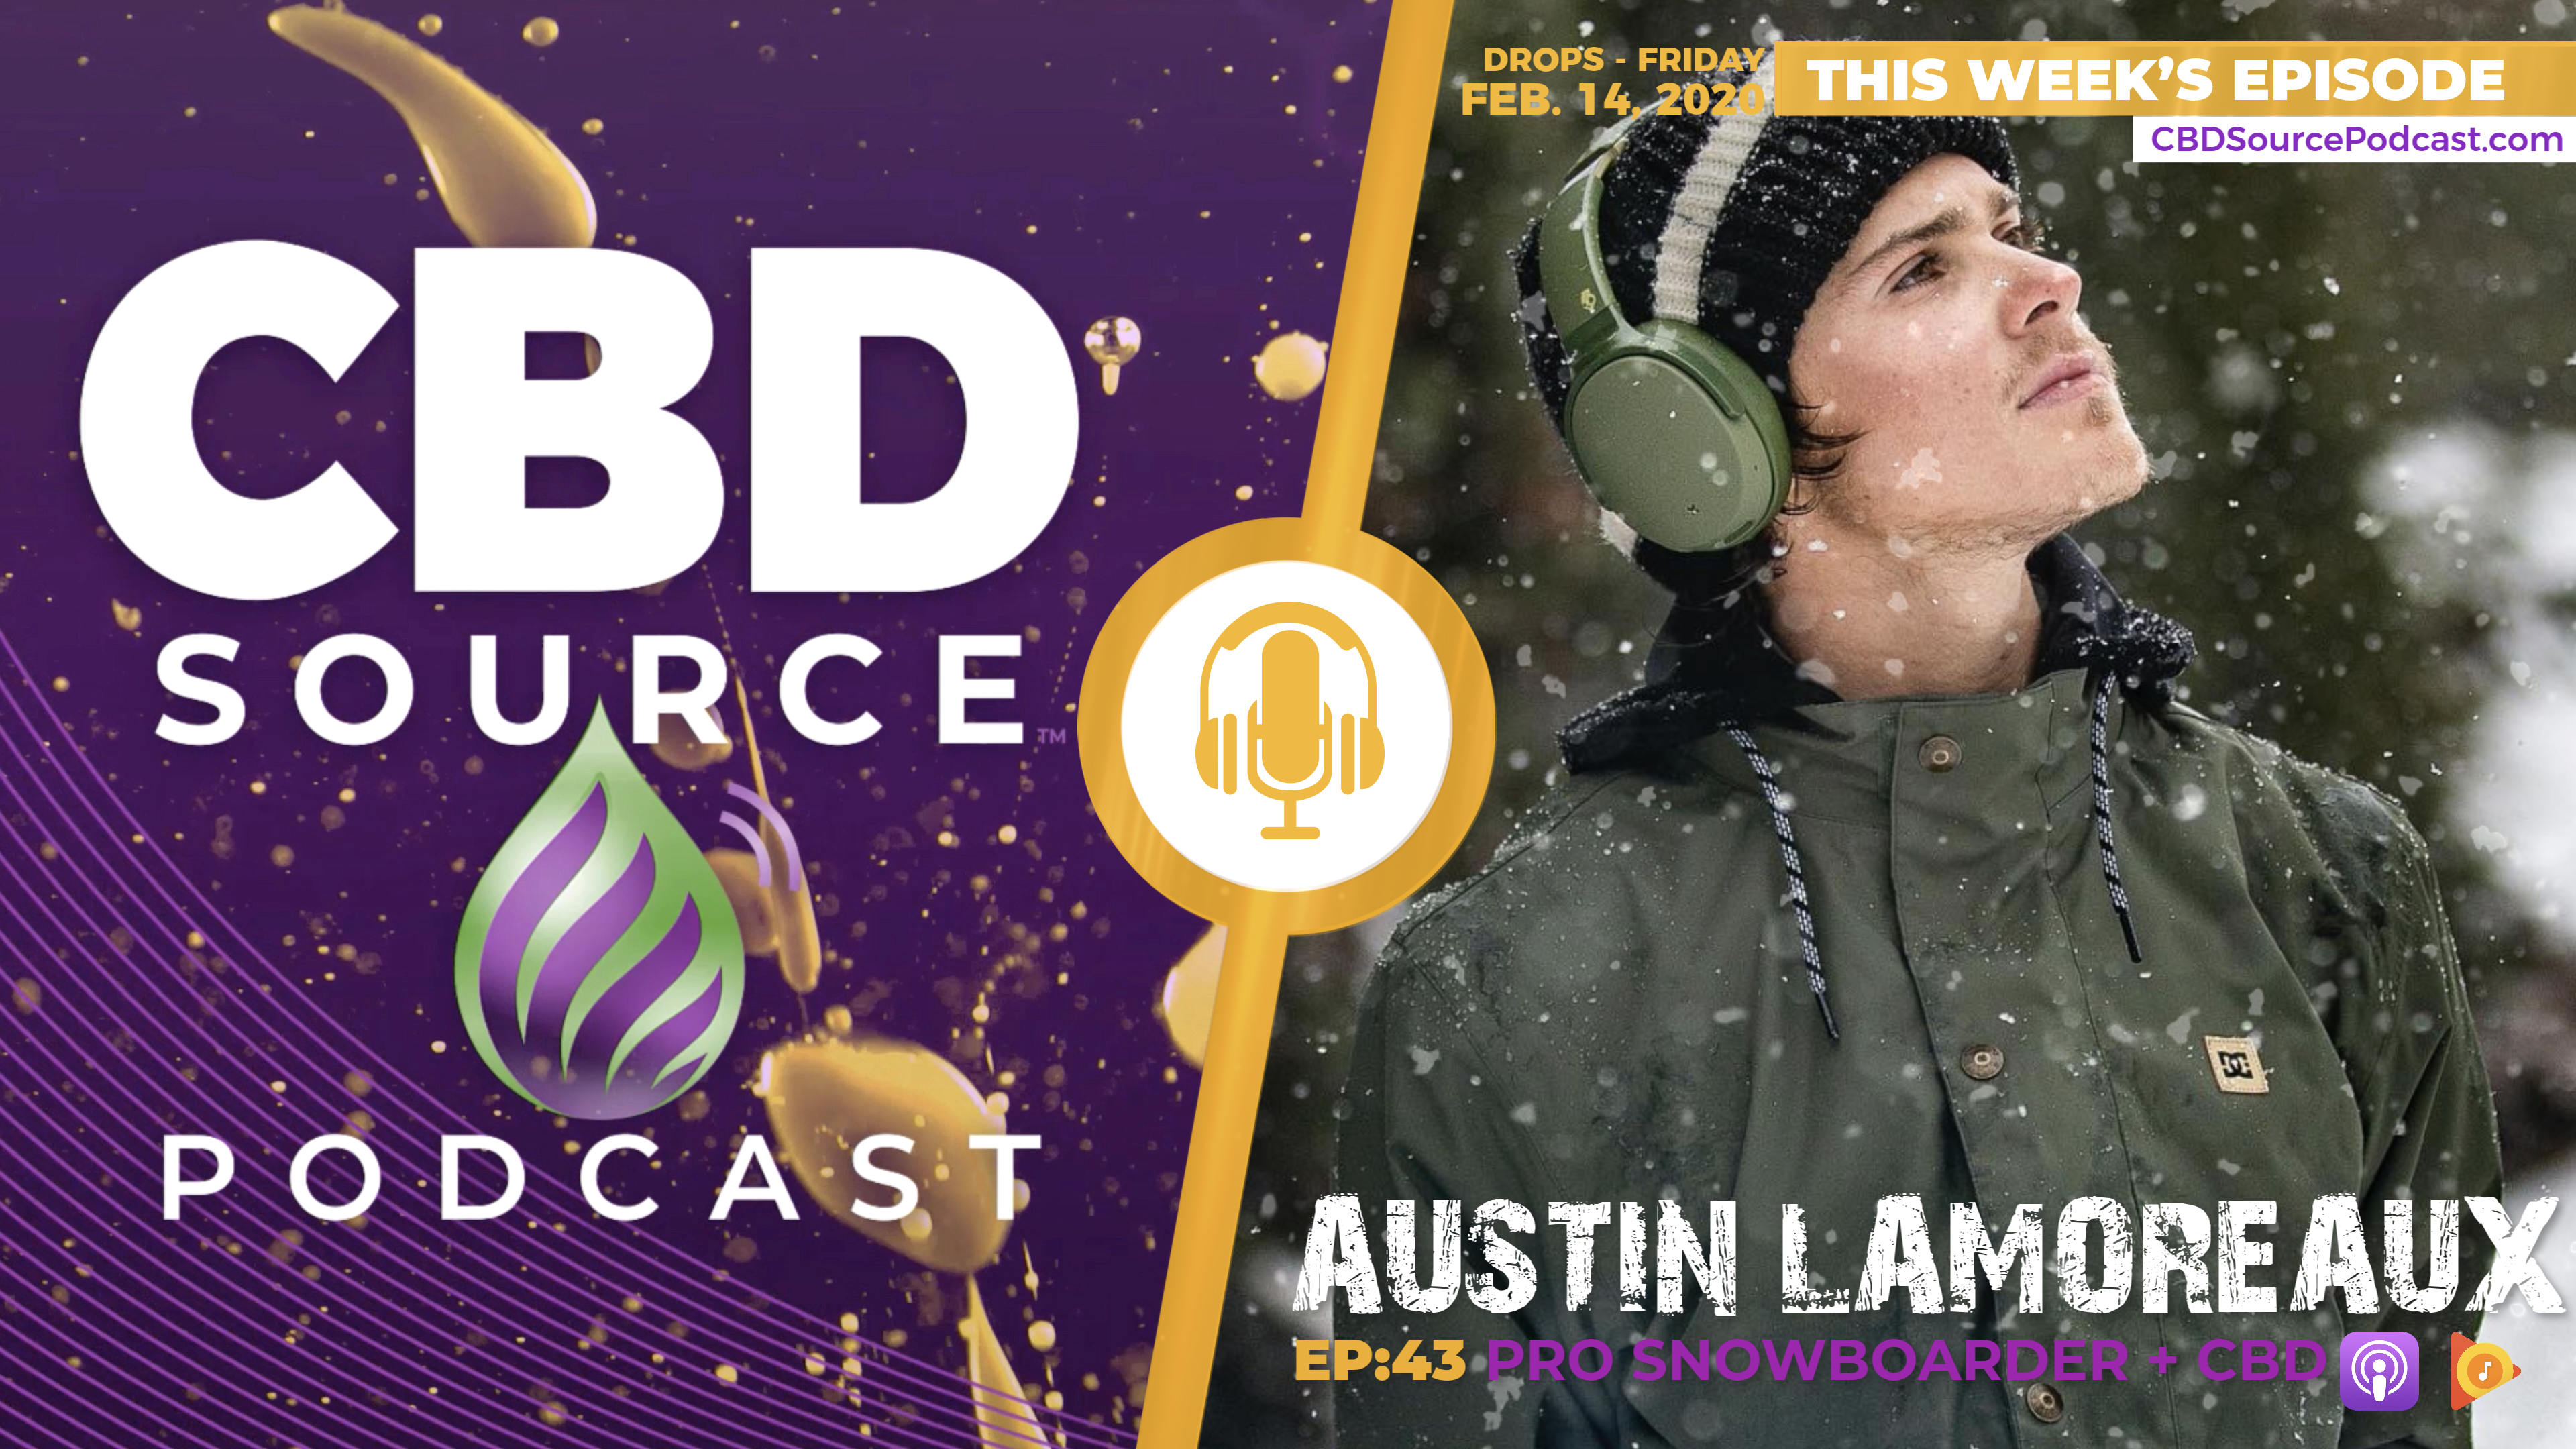 https://www.cbdsourcepodcast.com/wp-content/uploads/2020/02/Austin-Lamoreaux-CBD-Source-Podcast-Interview-43-Blog-Opener.png